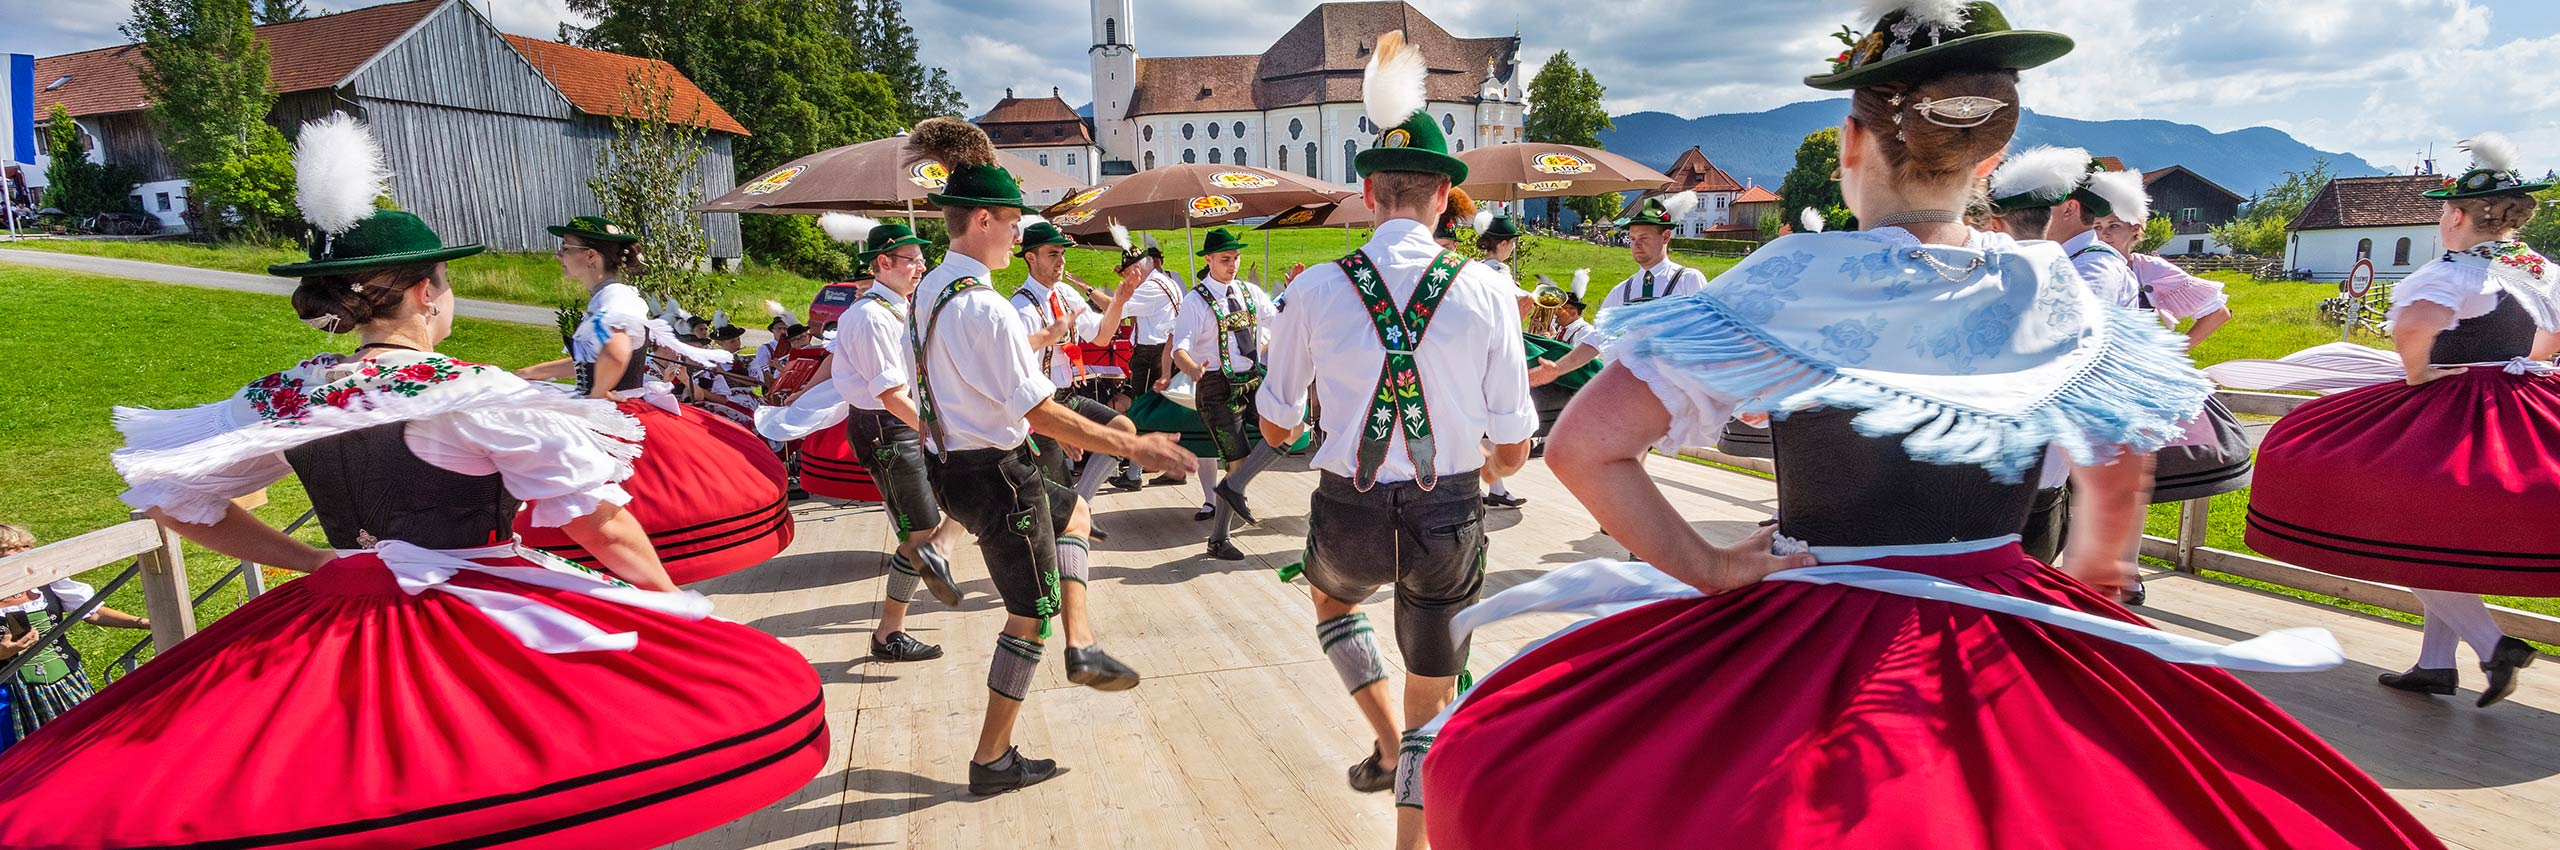 BVH-22029669 | GER/Bavaria, Pilgrimage Church of Wies near Steingaden, Festival of Traditional Costumes | © Reinhard Schmid/4Corners